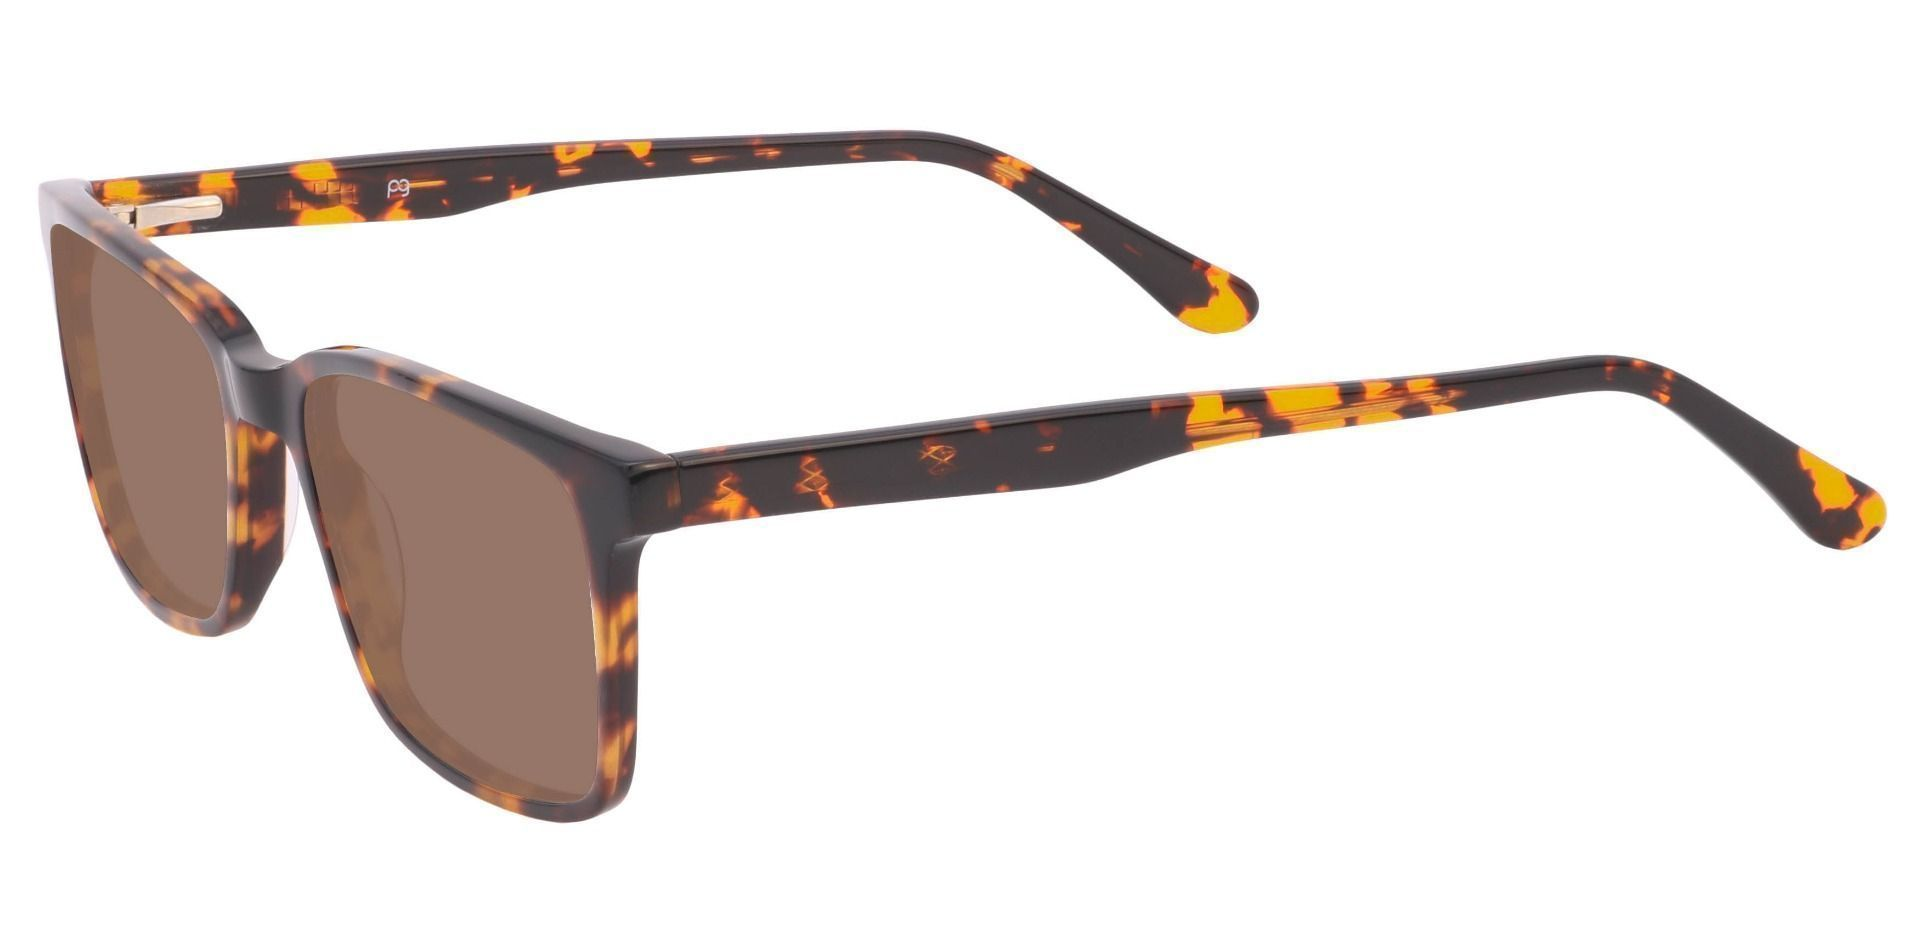 Venice Rectangle Non-Rx Sunglasses - Tortoise Frame With Brown Lenses